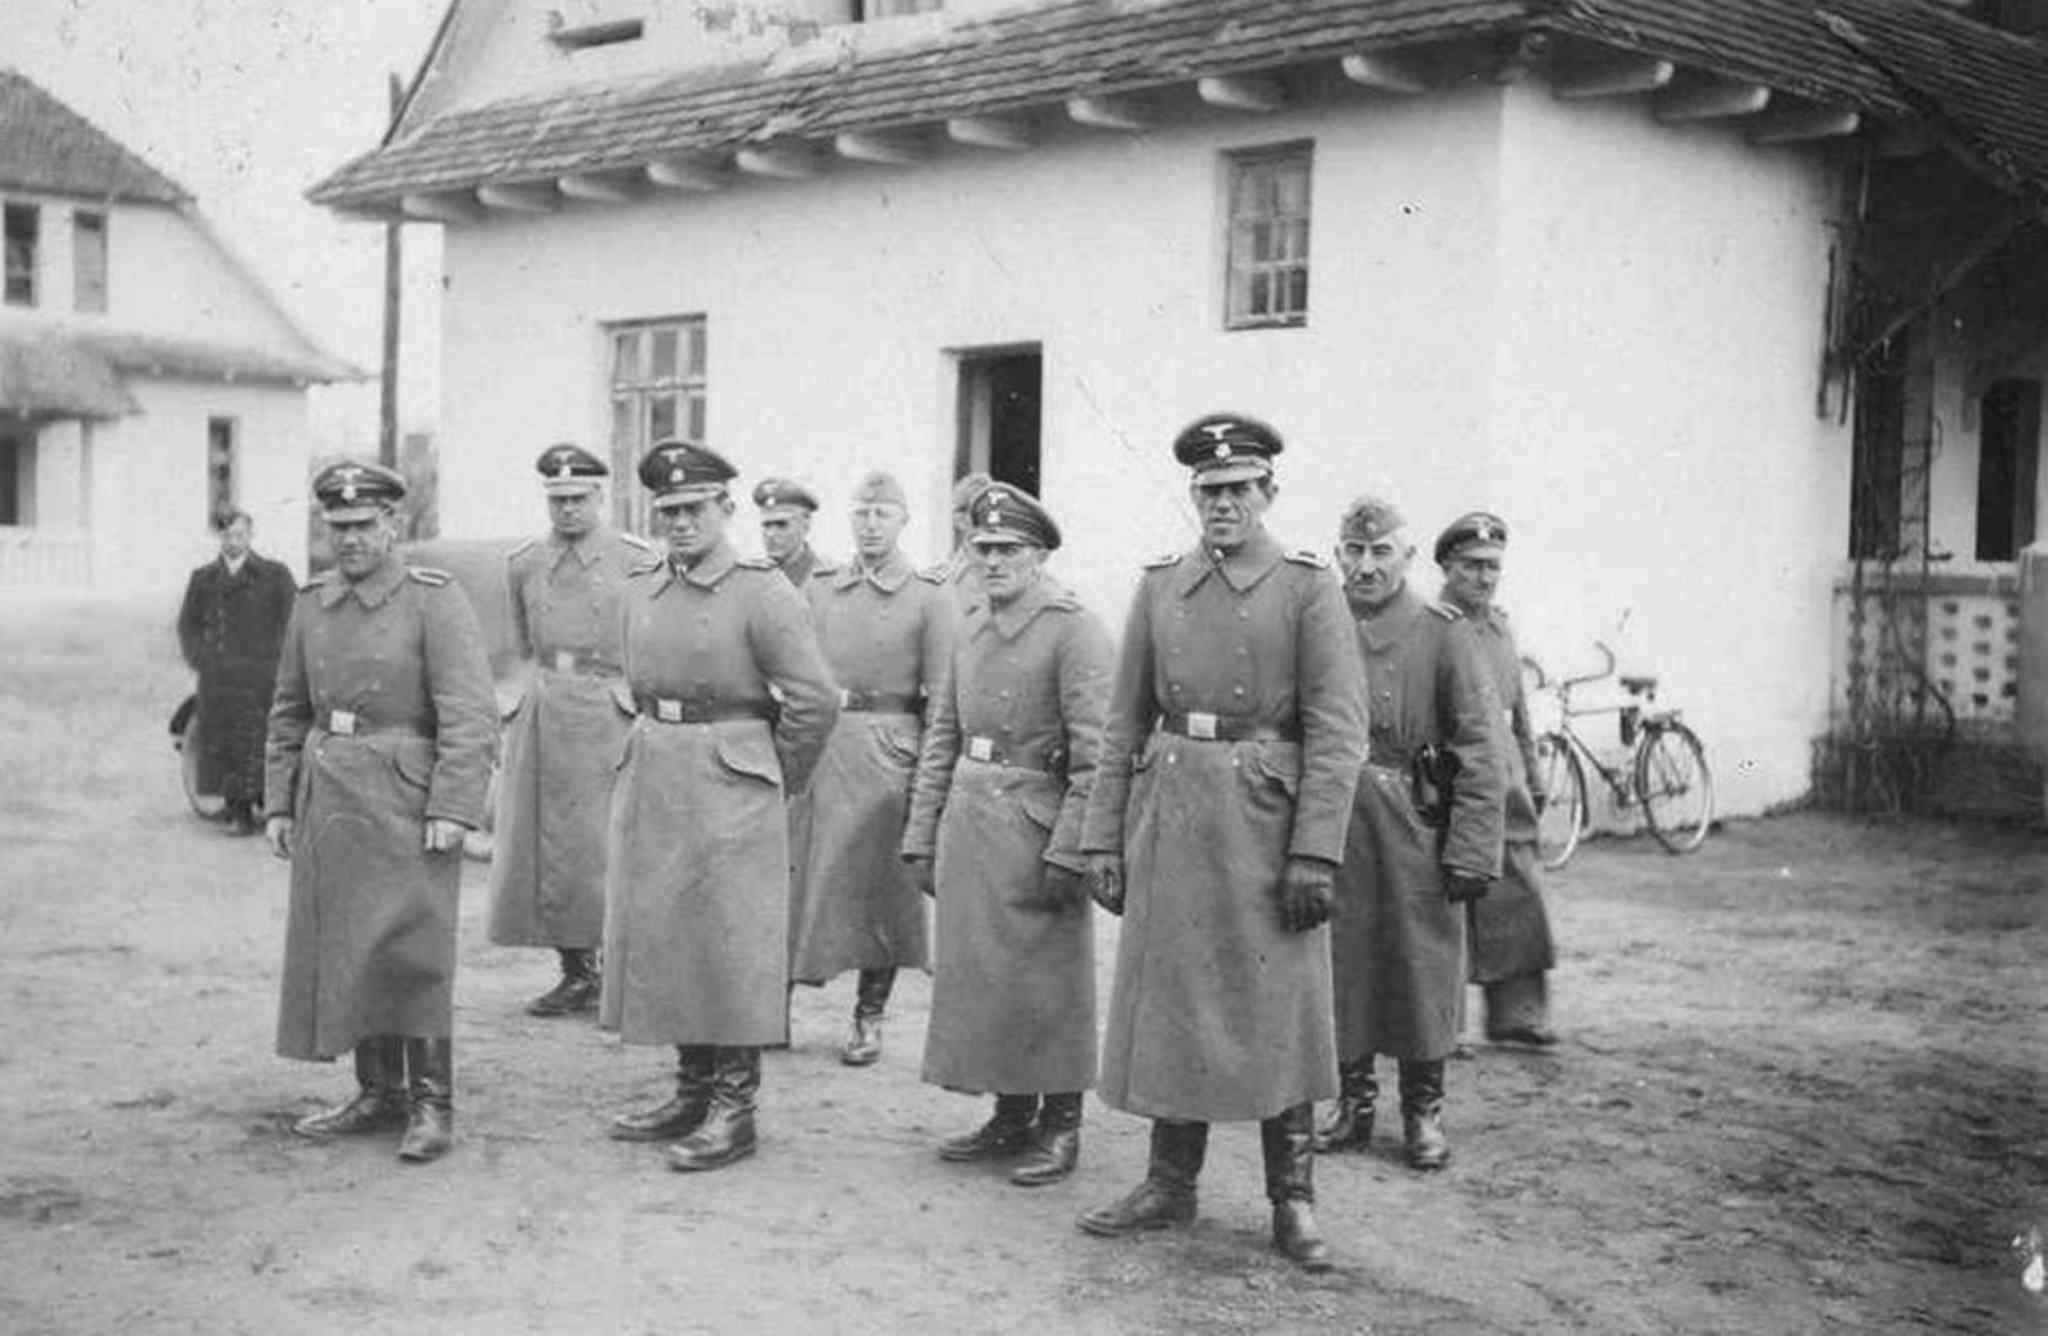 Nazi guards at the Belzec death camp in occupied Poland in 1942. (Yad Vashem / The Associated Press Archives)